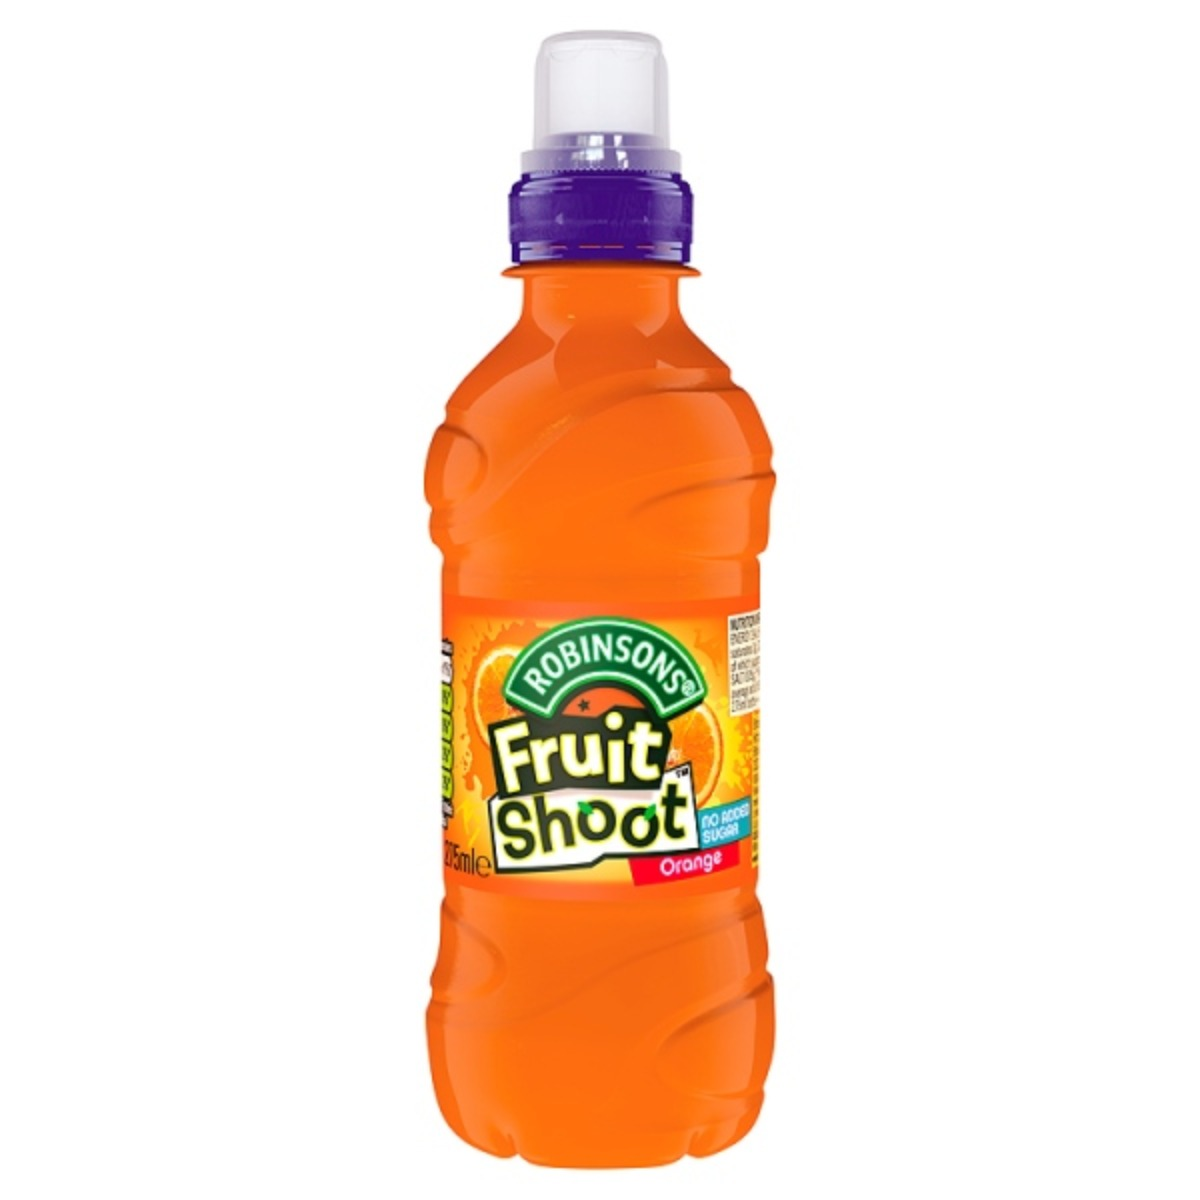 Fruit Shoot Orange 12x275ml